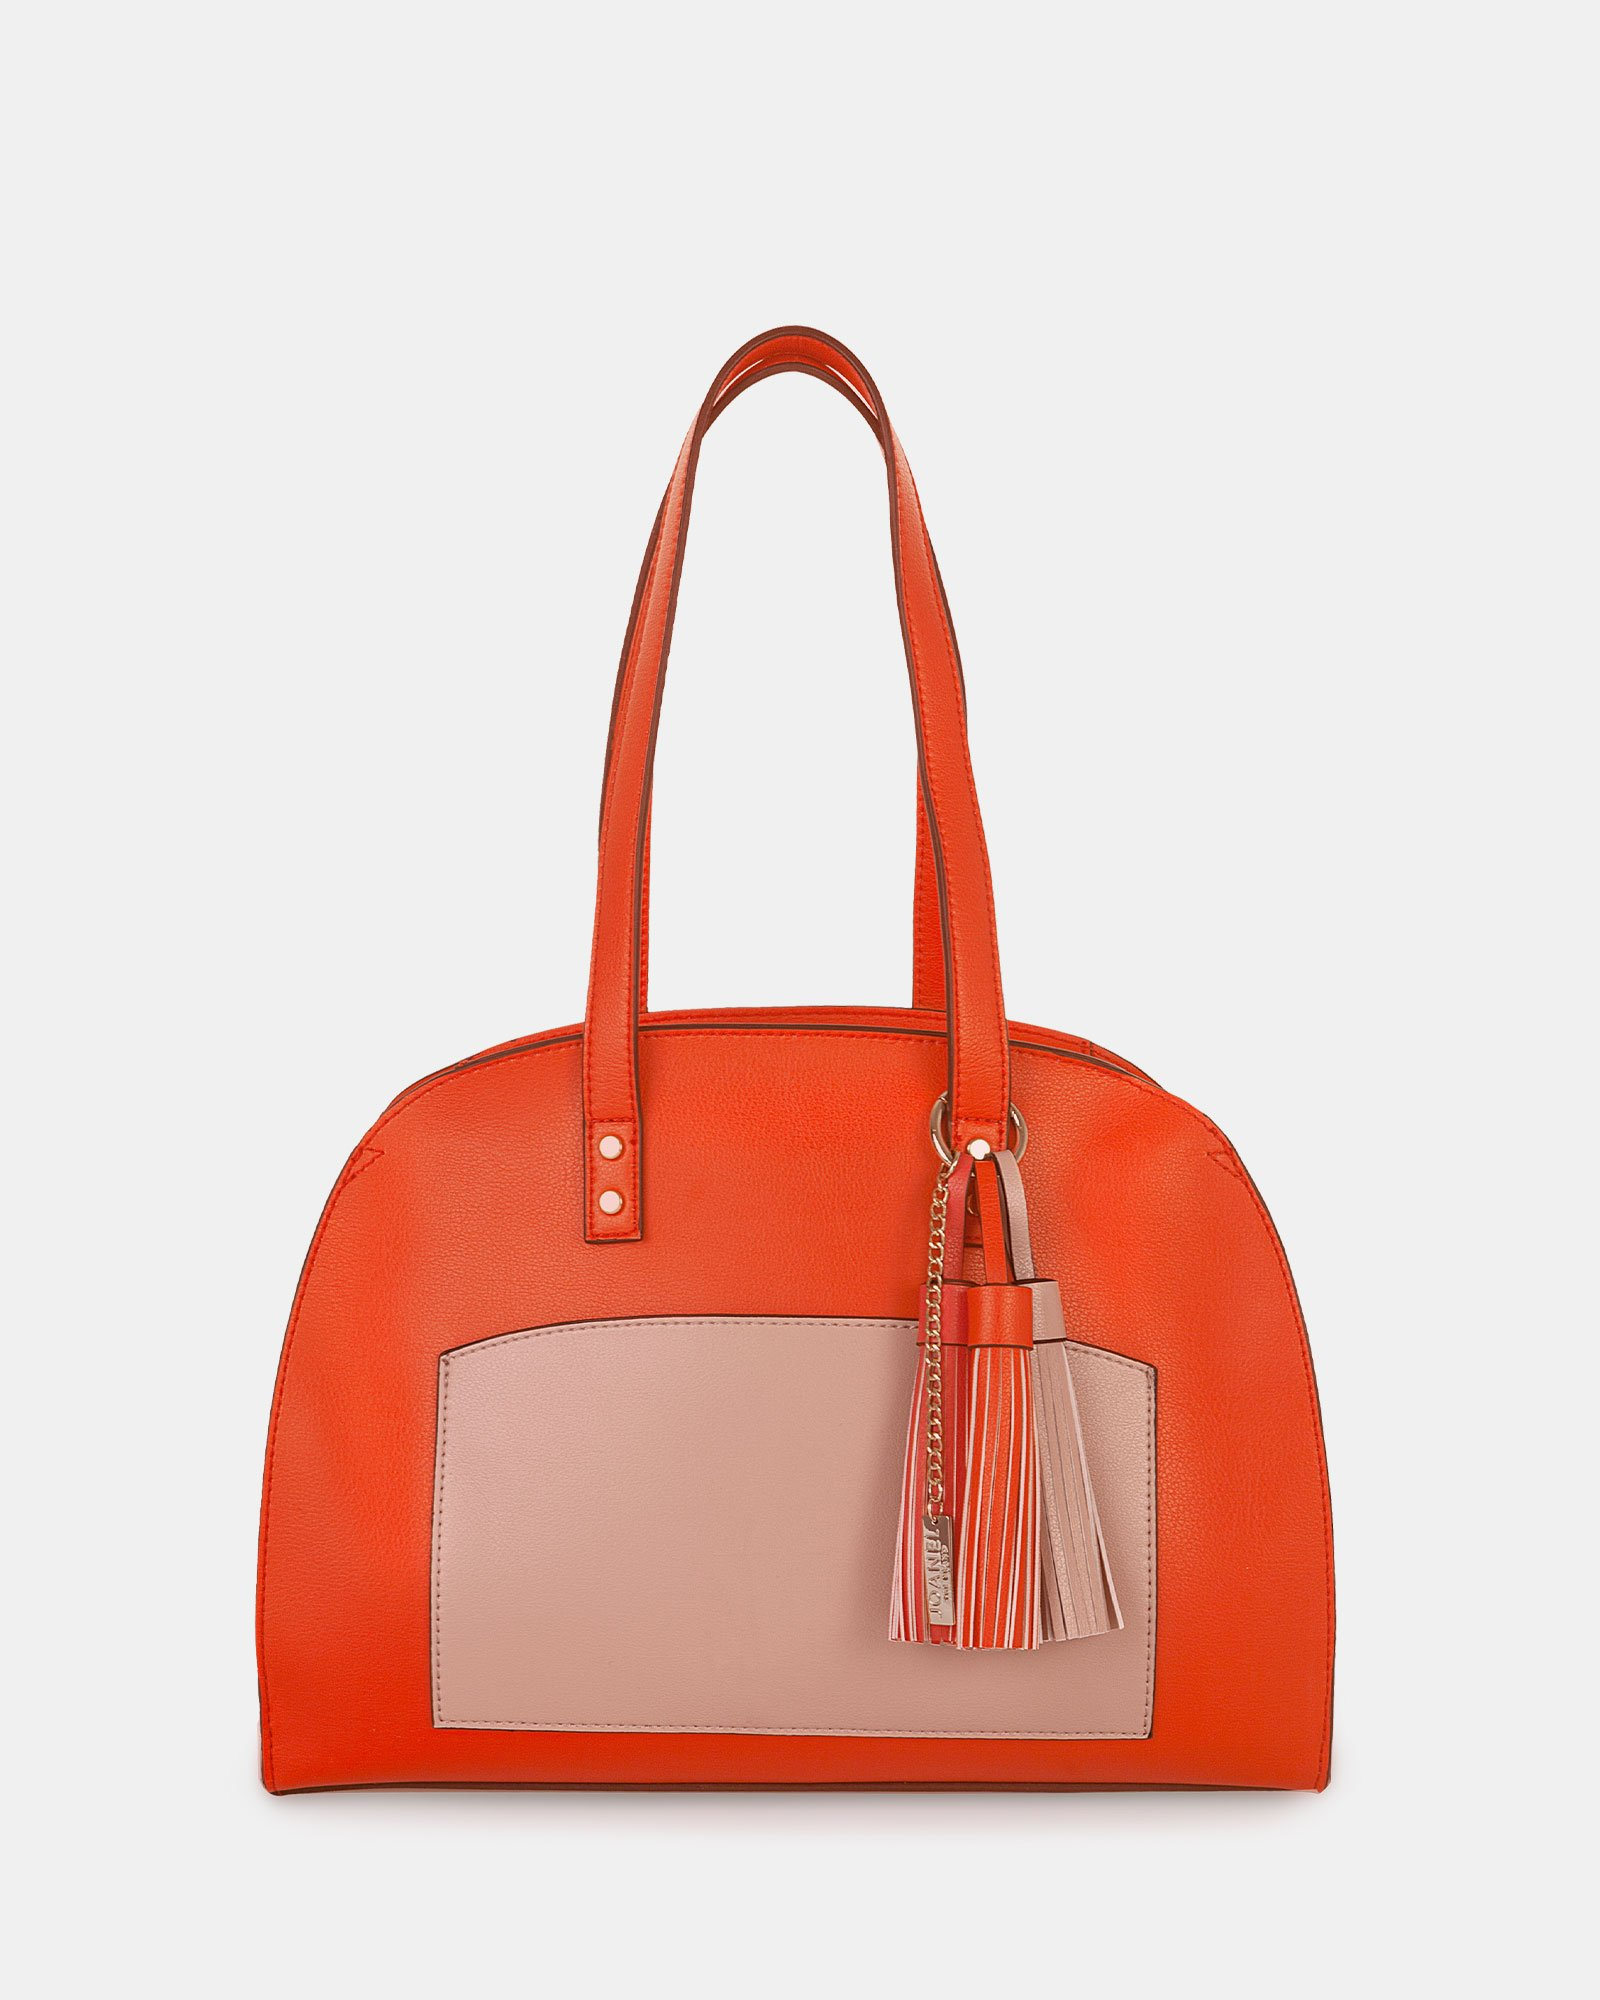 XOXO - Tote bag with Main zippered compartment - Coral combo - Joanel - Zoom